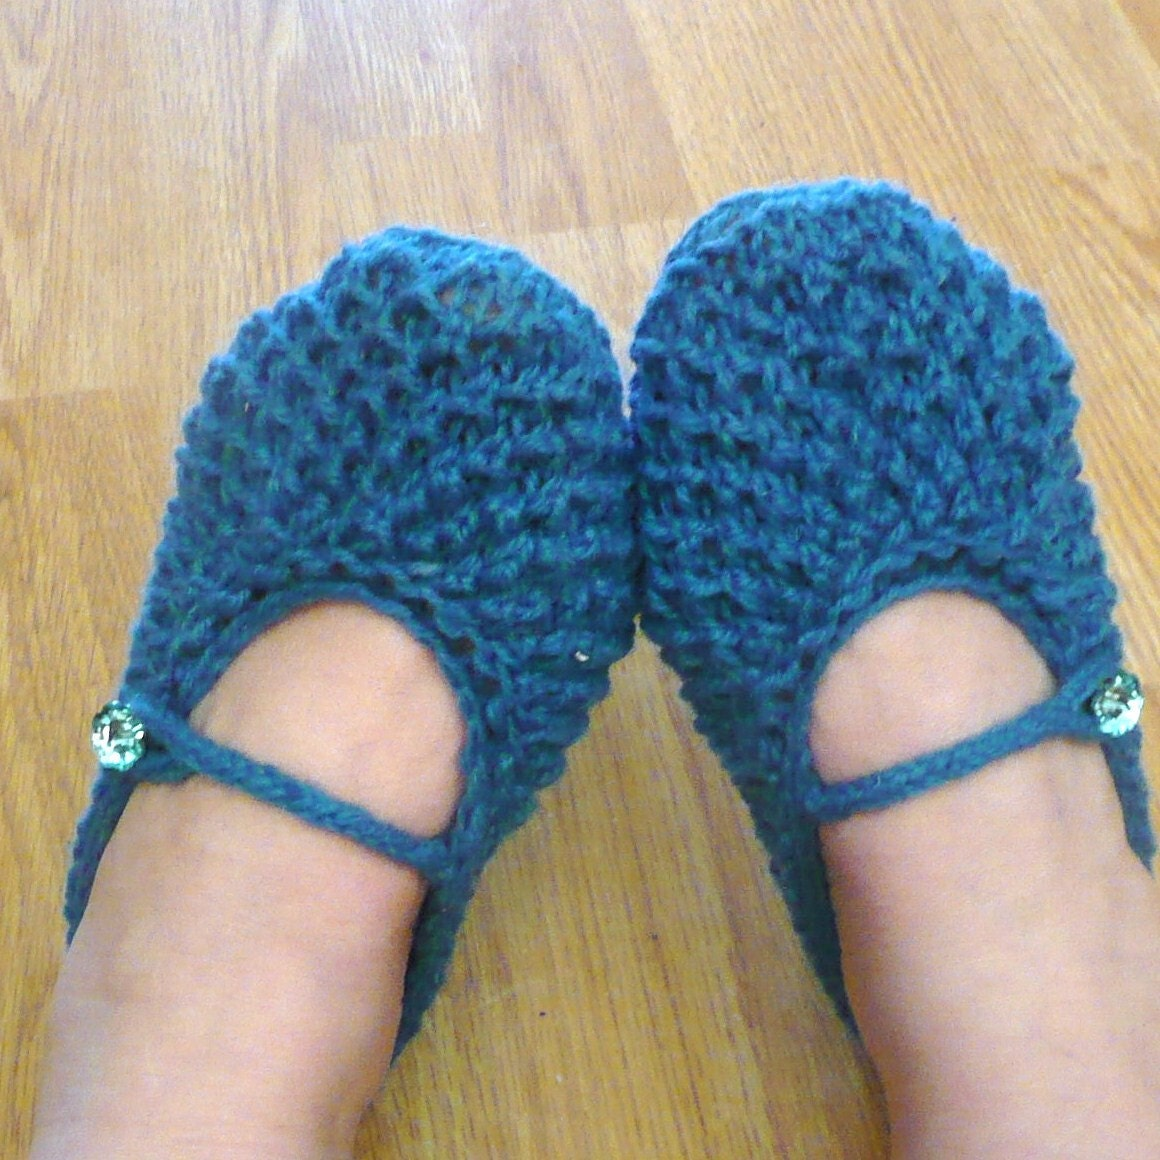 Knitting Pattern For Womens Slippers : Items similar to SLIPPERS Knitting PATTERN Instant Download - Bonne Maman Mar...